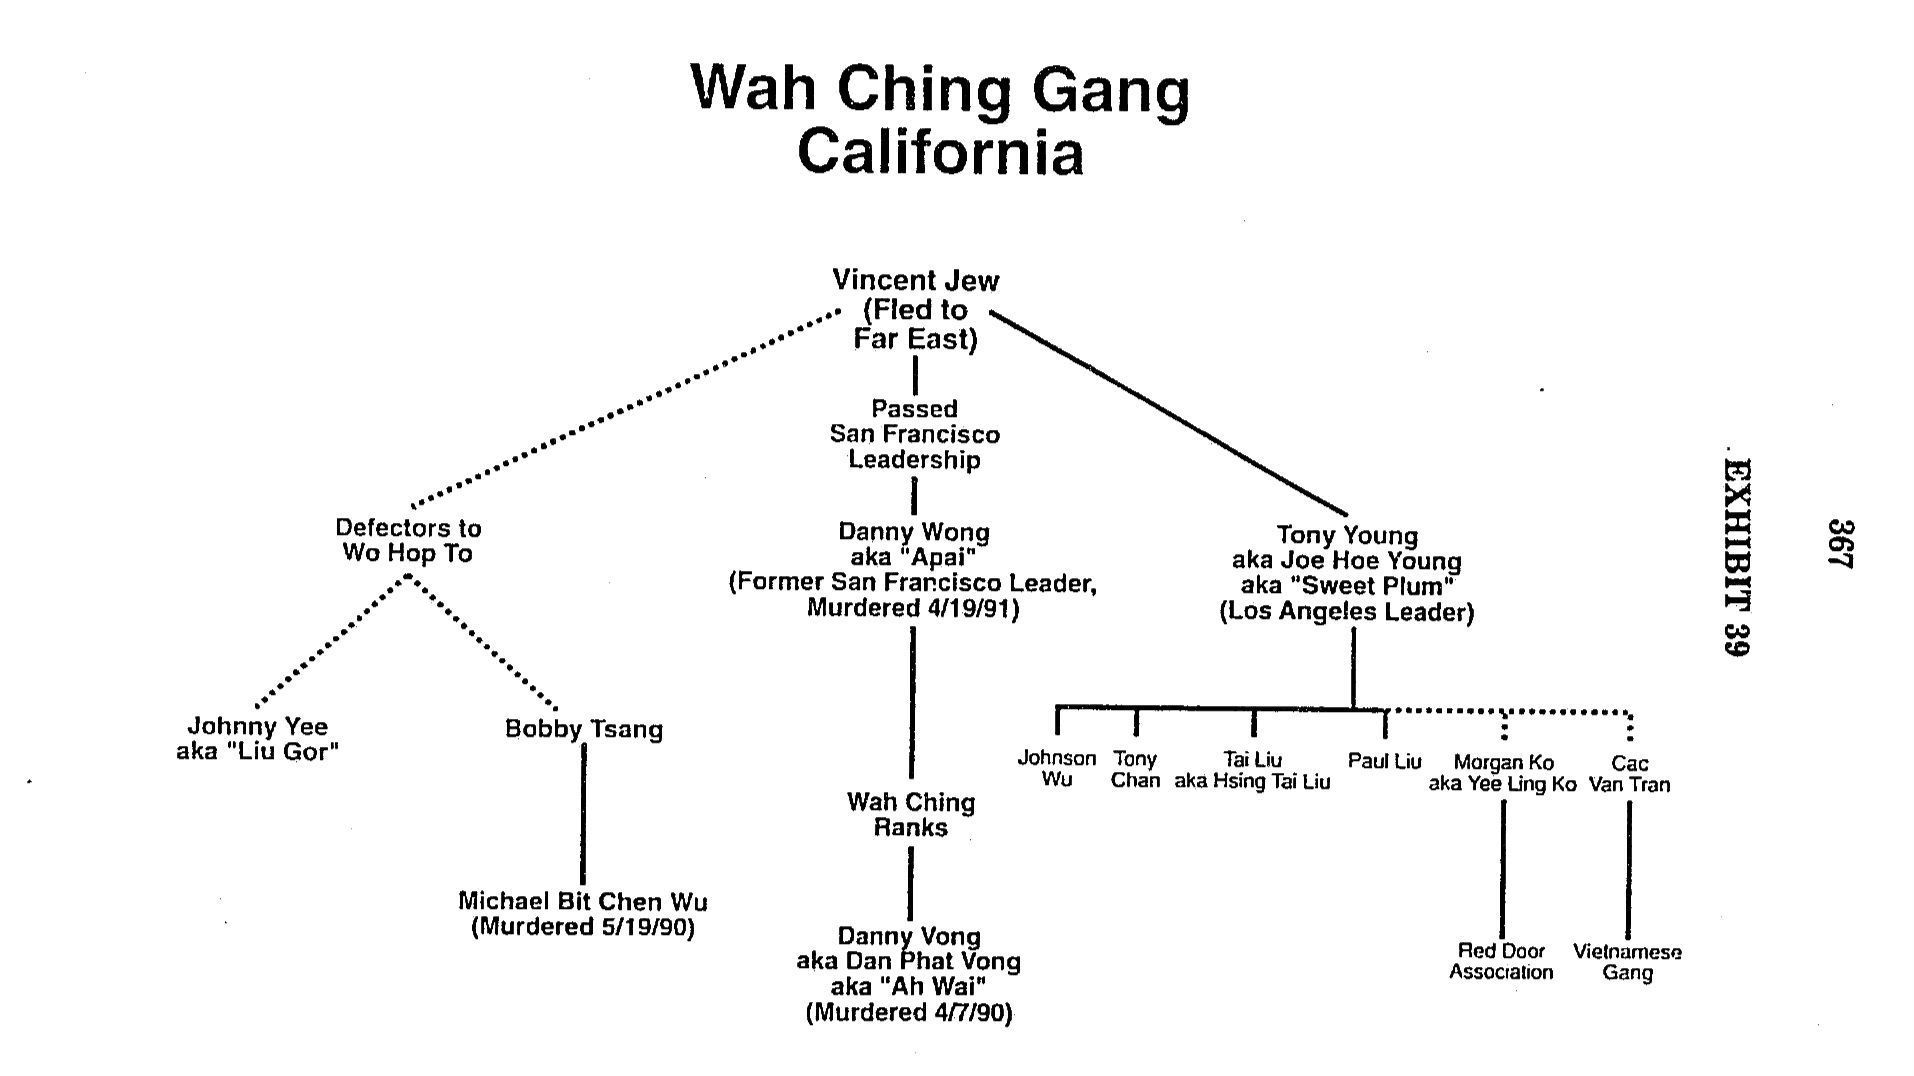 Wah Ching organizational chart presented to the Committee on Governmental Affairs in 1991, listing Tony Young as the Los Angeles leader of the Wah Ching.